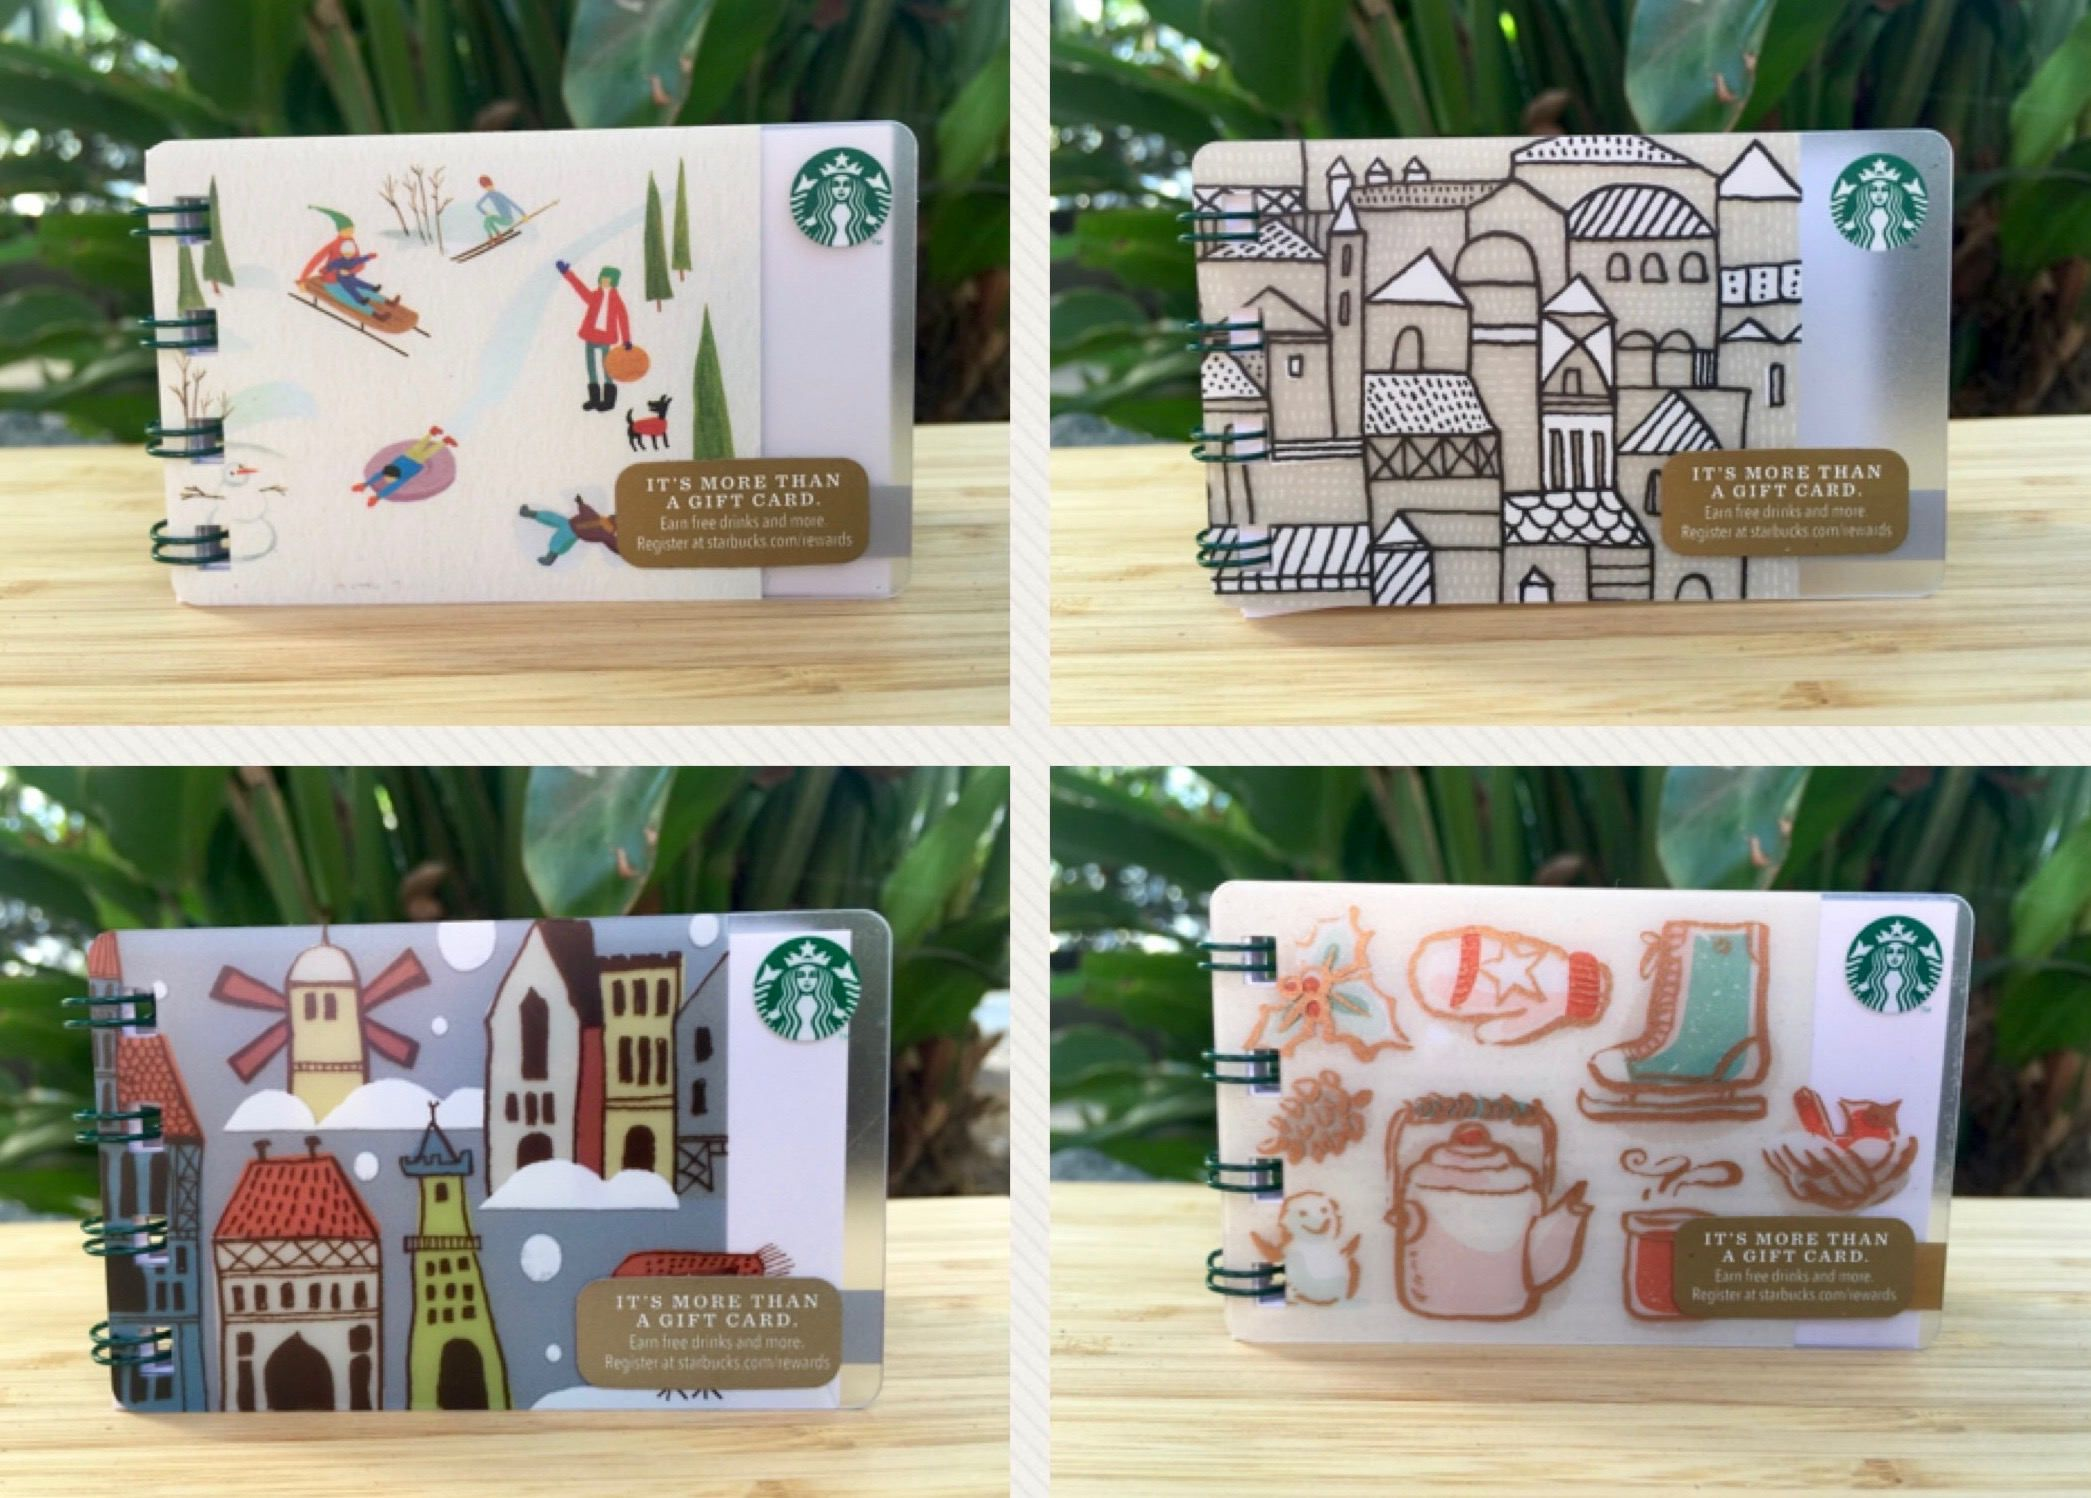 Idea by loose change mercantile on upcycled starbucks